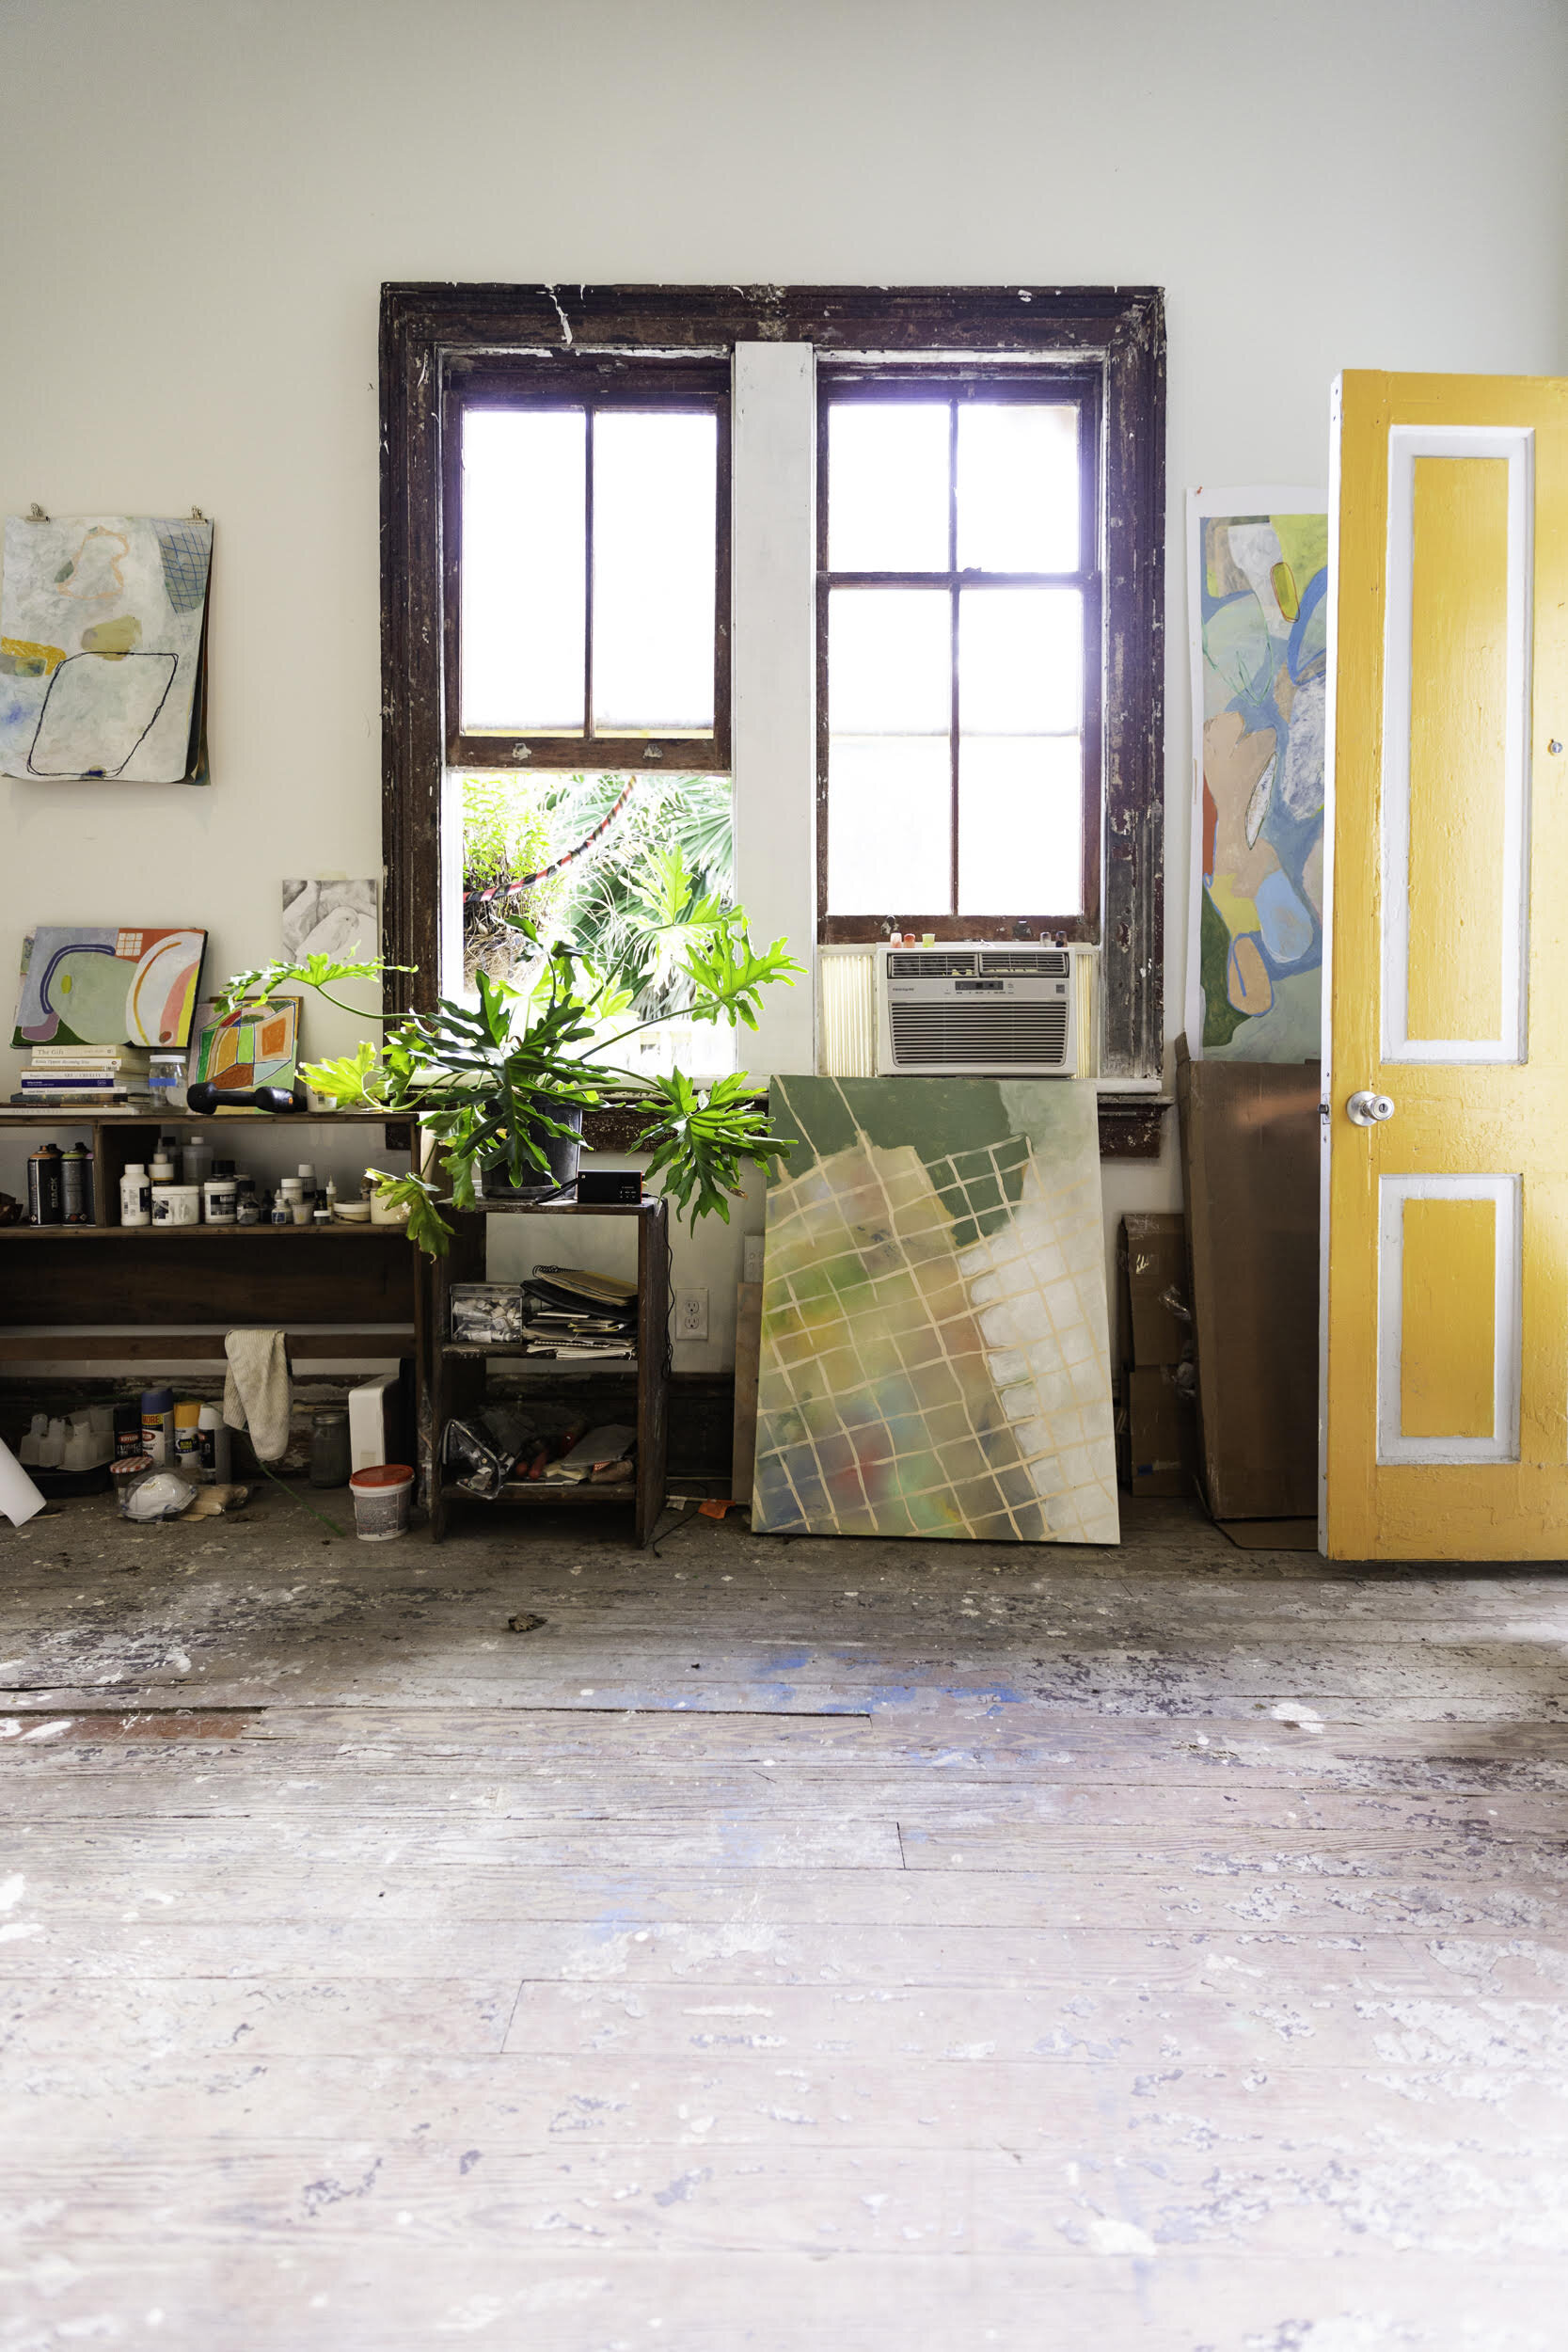 Walls's studio at Aquarium Gallery in the Bywater neighborhood of New Orleans